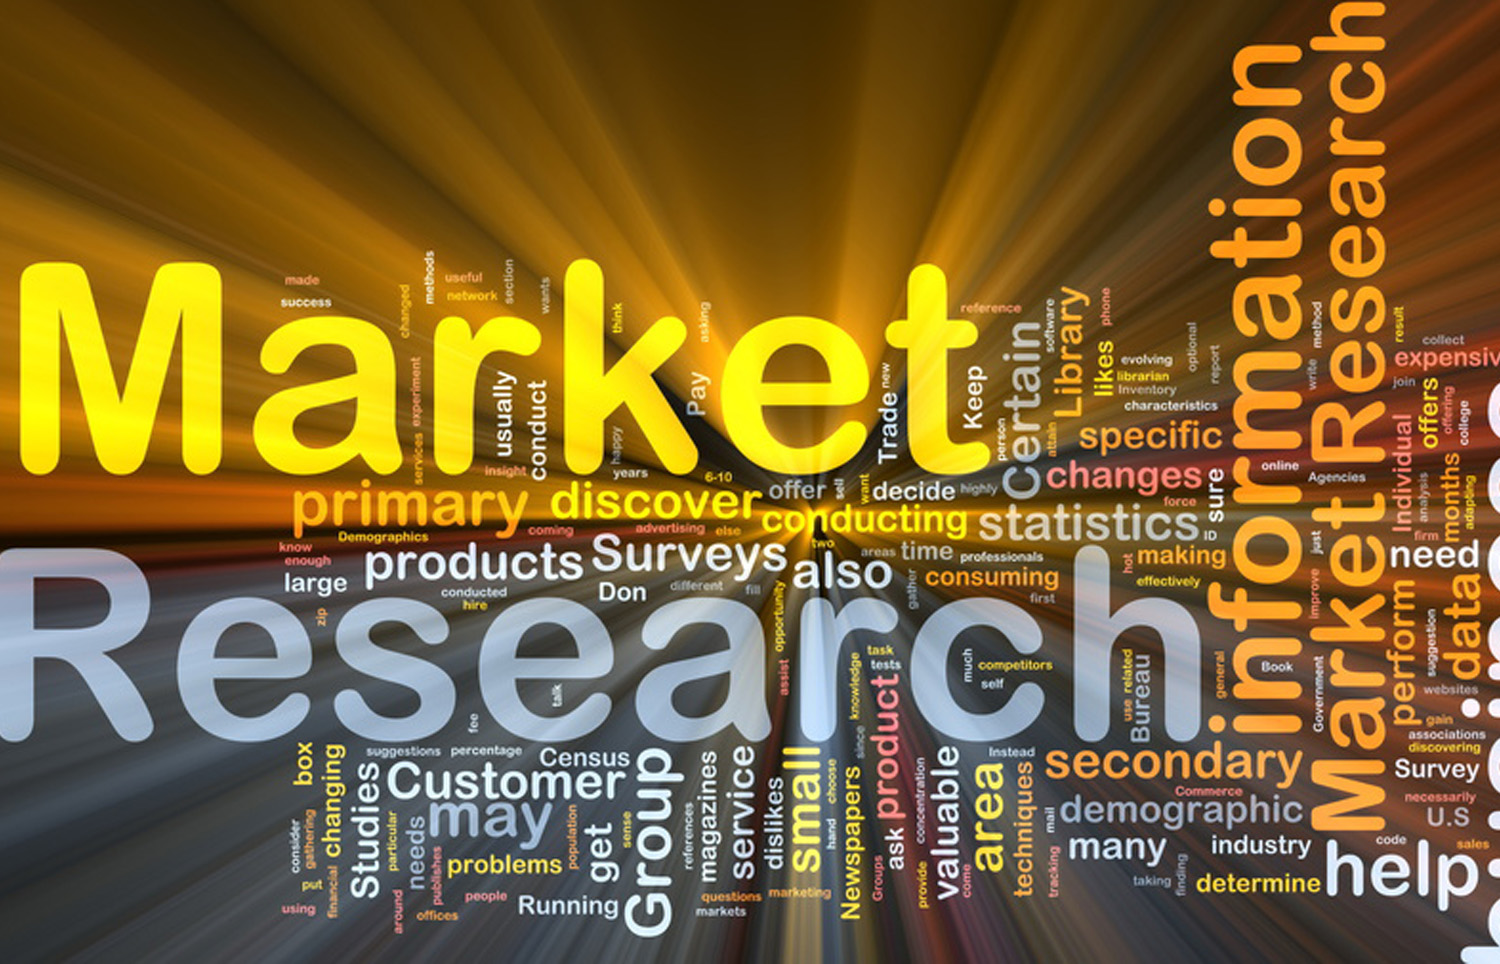 primary market research In this article, we give a complete overview on primary and secondary market research techniques, the benefits, the methods, and what mistakes to avoid.